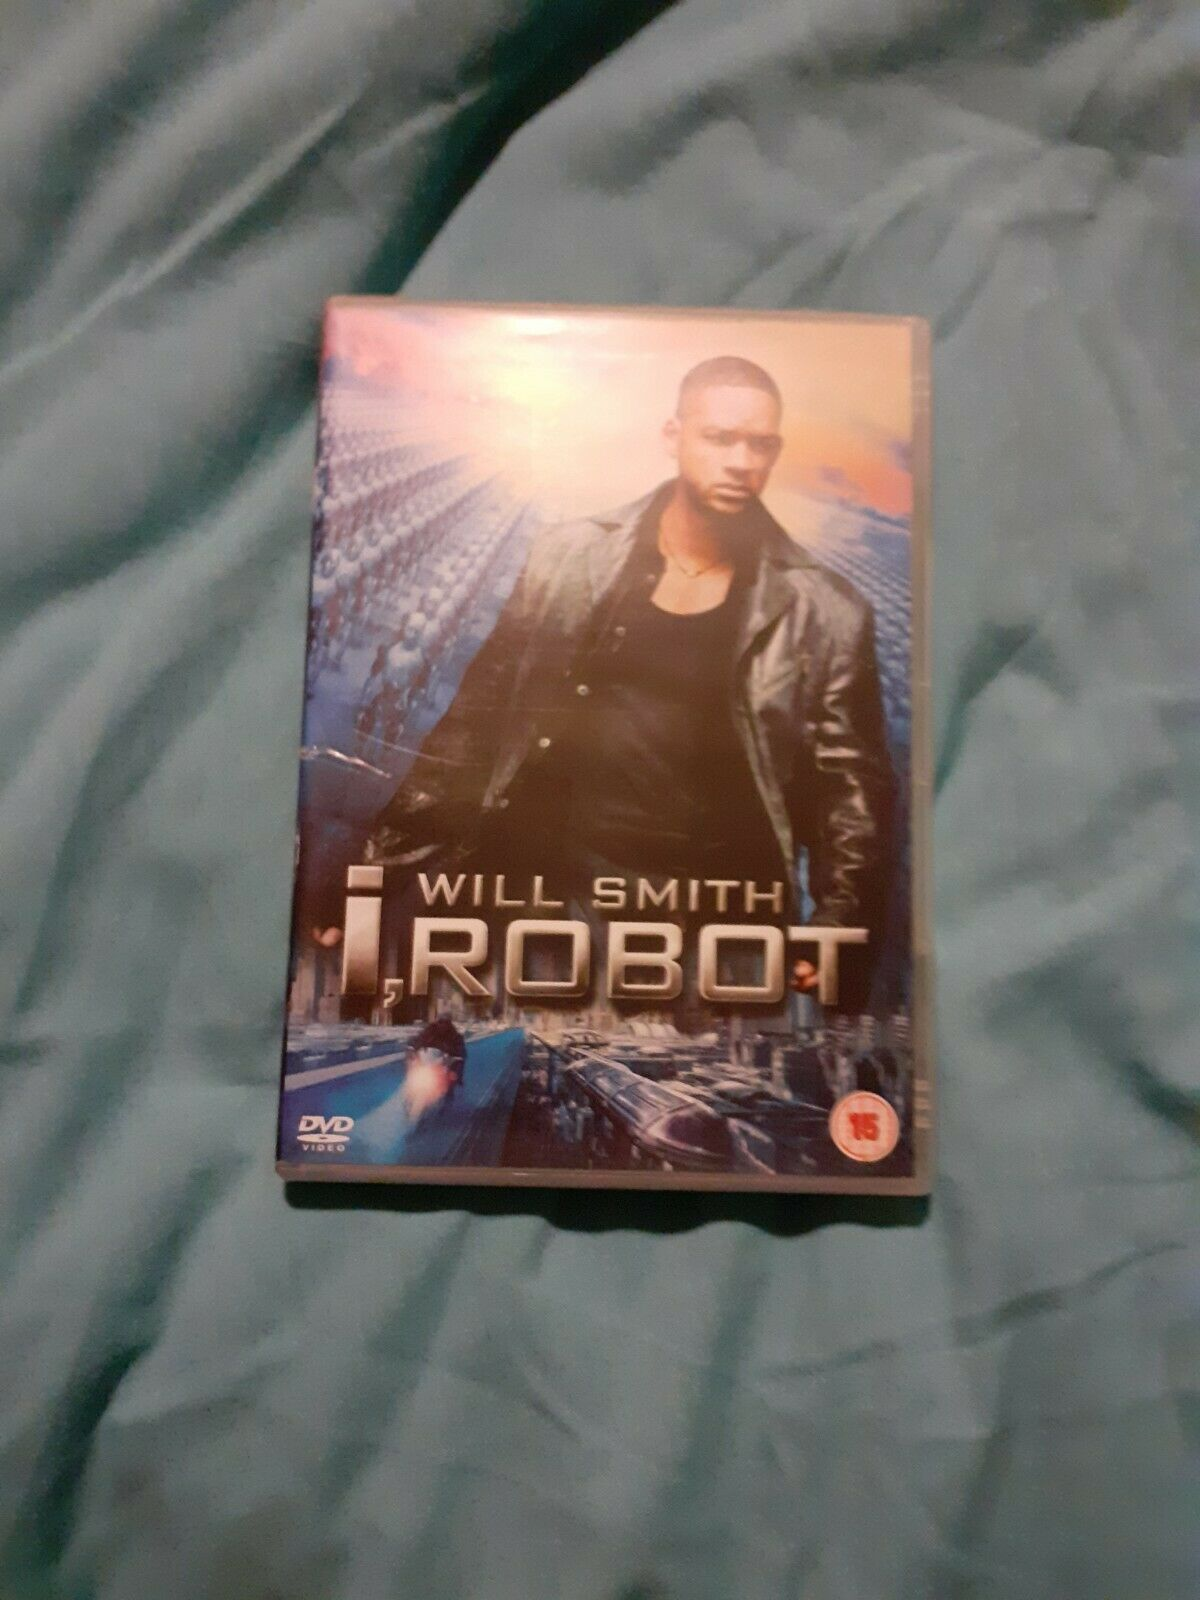 Details About Dvd I Robot Will Smith Cert 15 Movie Nights In Fun